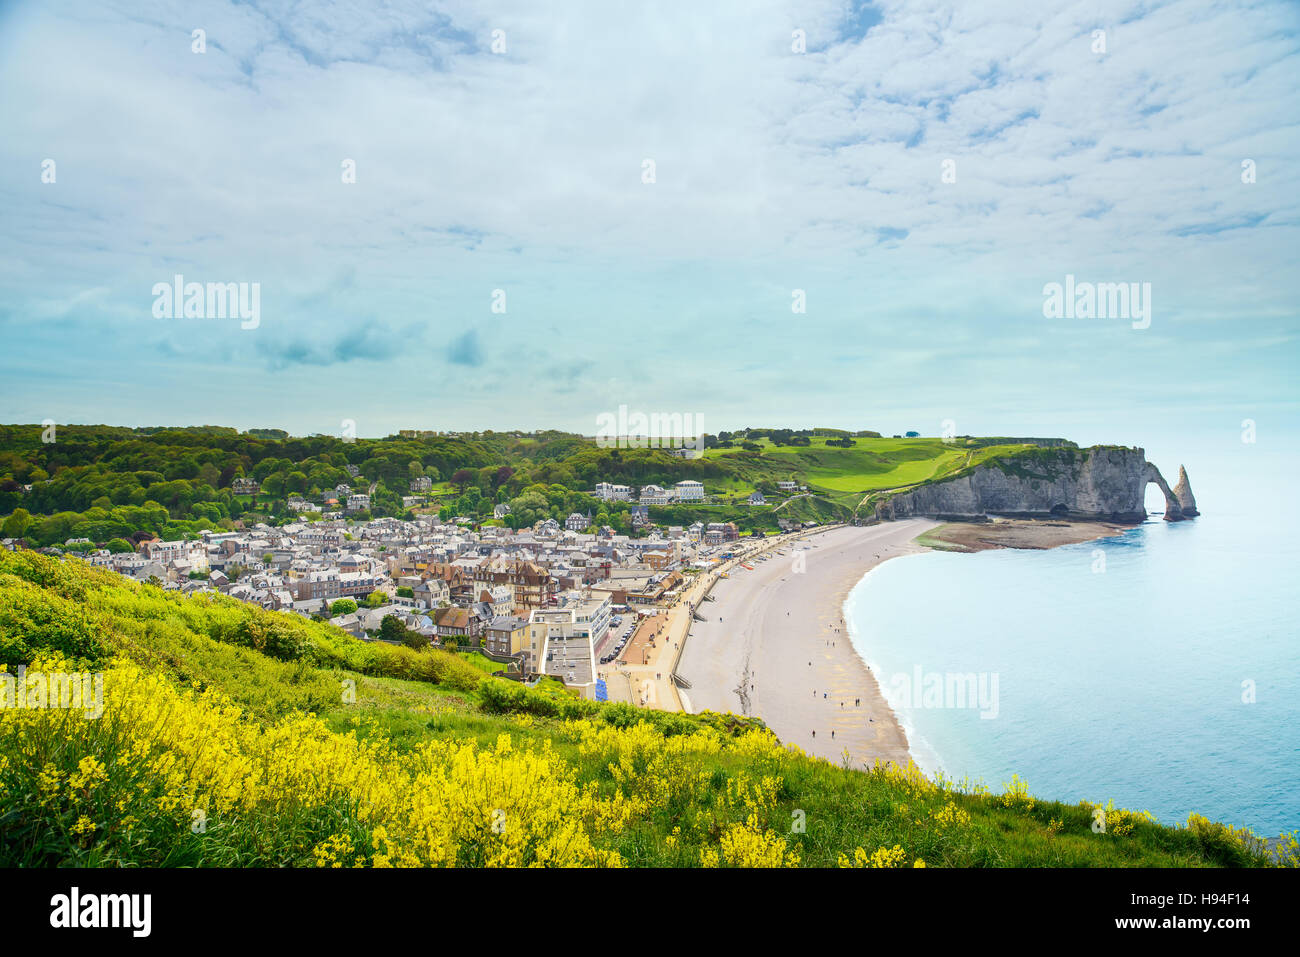 Etretat village, beach and Aval cliff landmark on ocean. Aerial view. Normandy, France, Europe. - Stock Image